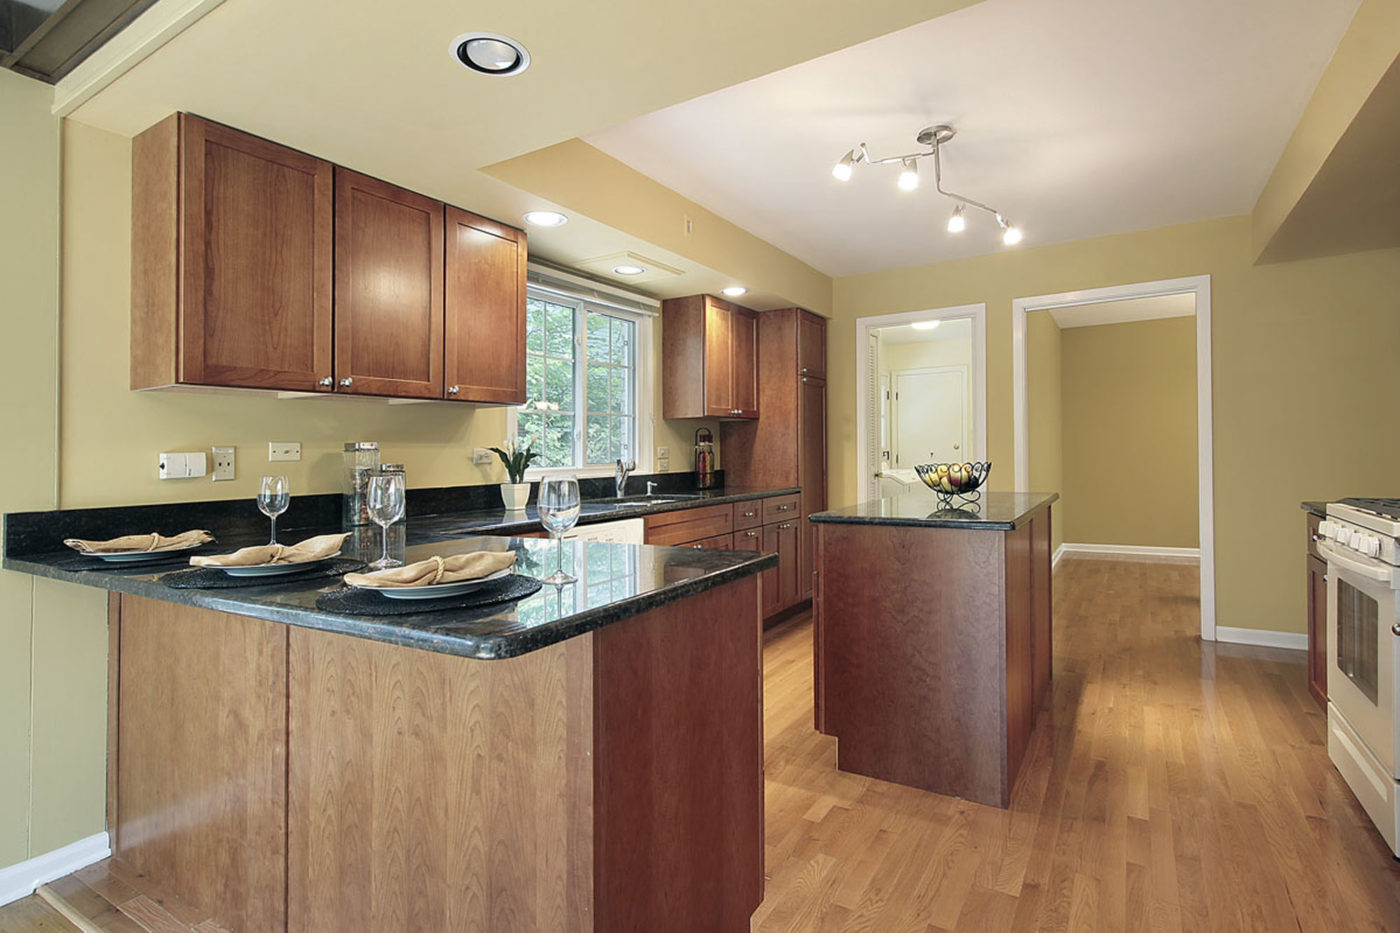 Kitchen in remodeled home with granite counters